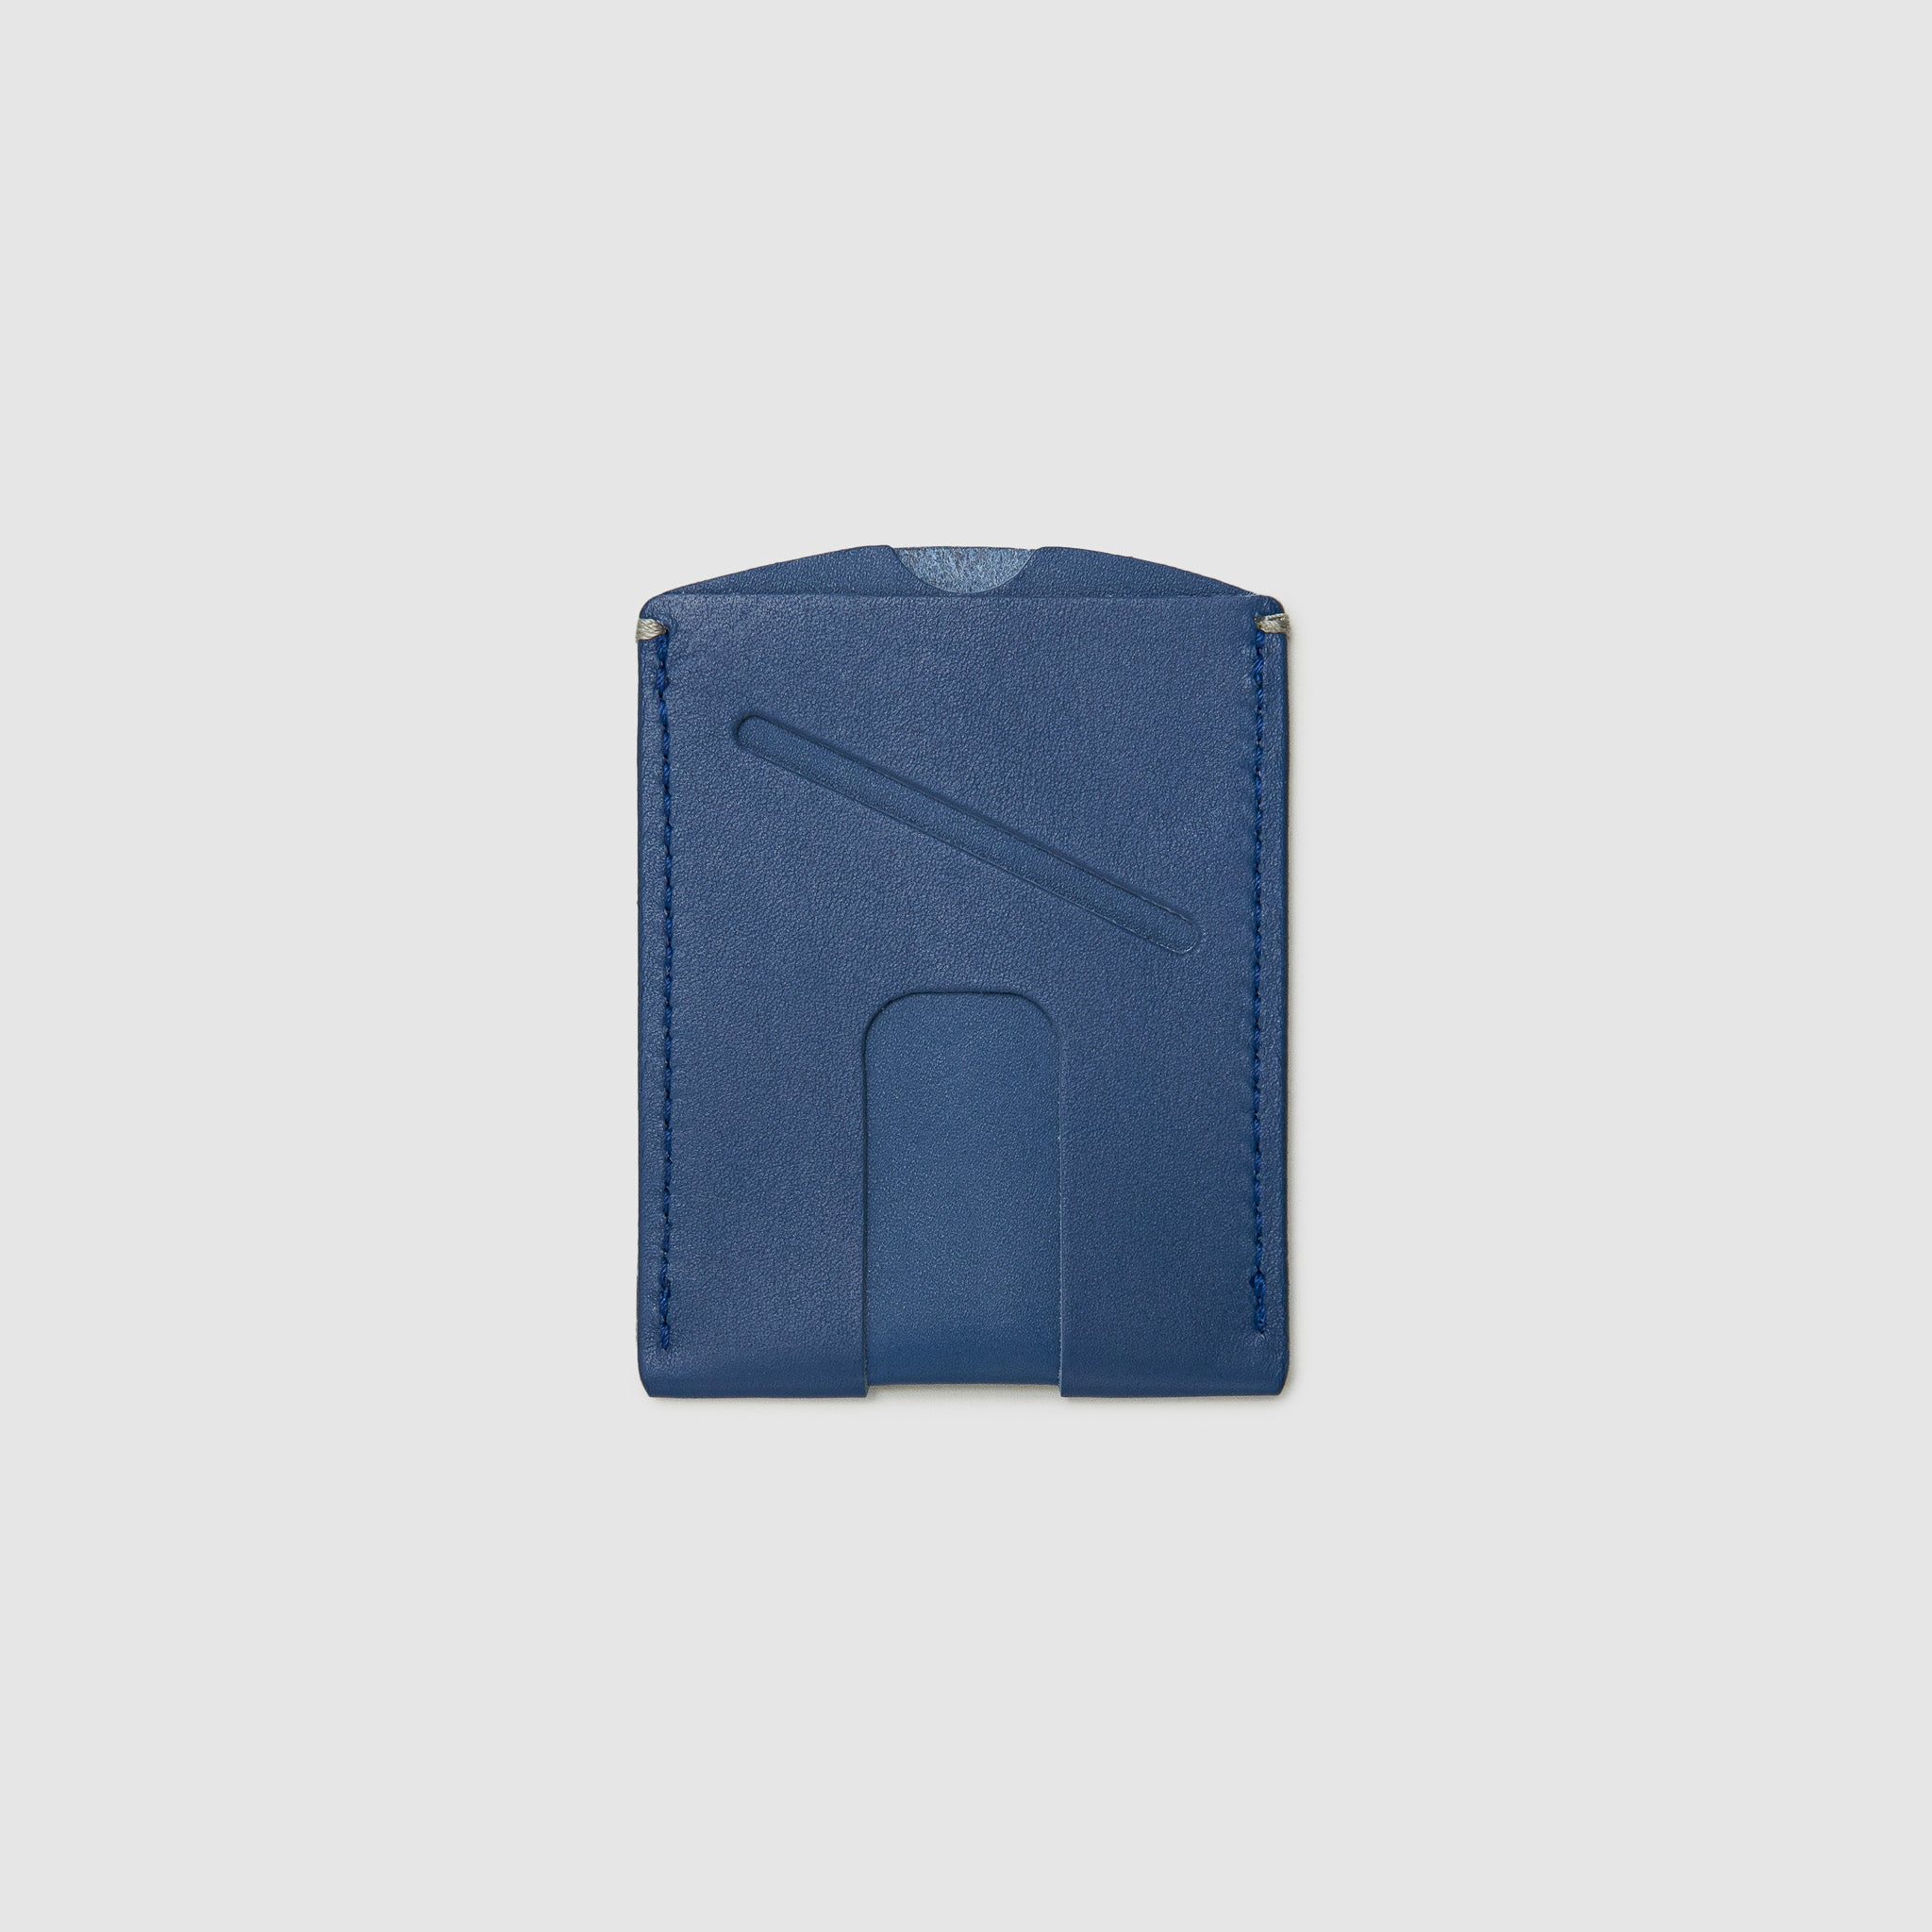 Anson Calder Card Holder Wallet french calfskin leather with cash slot _cobalt